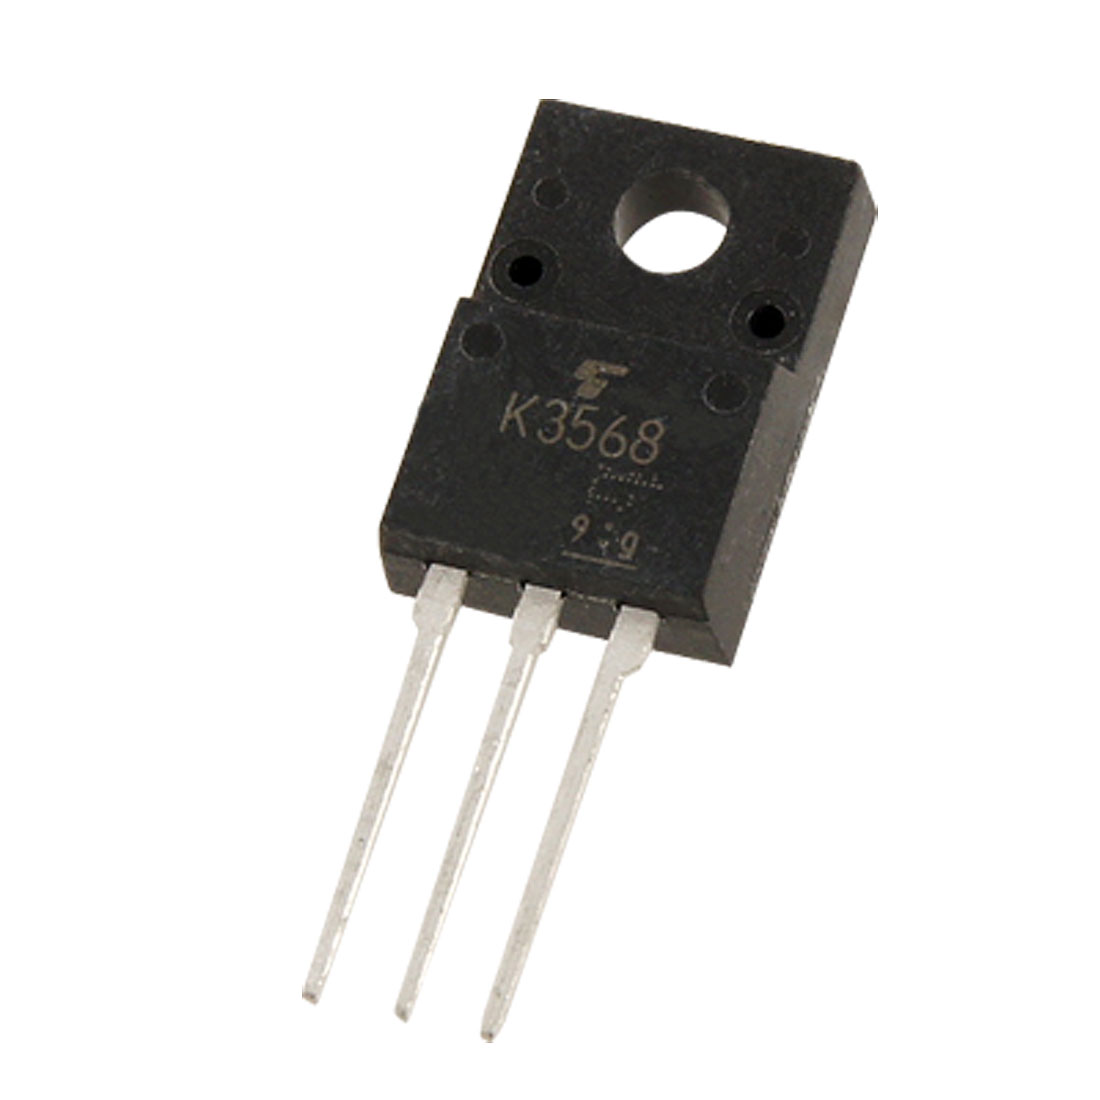 3 Pcs 2SK3568 12A 500V N Channel Power MOSFET Transistor